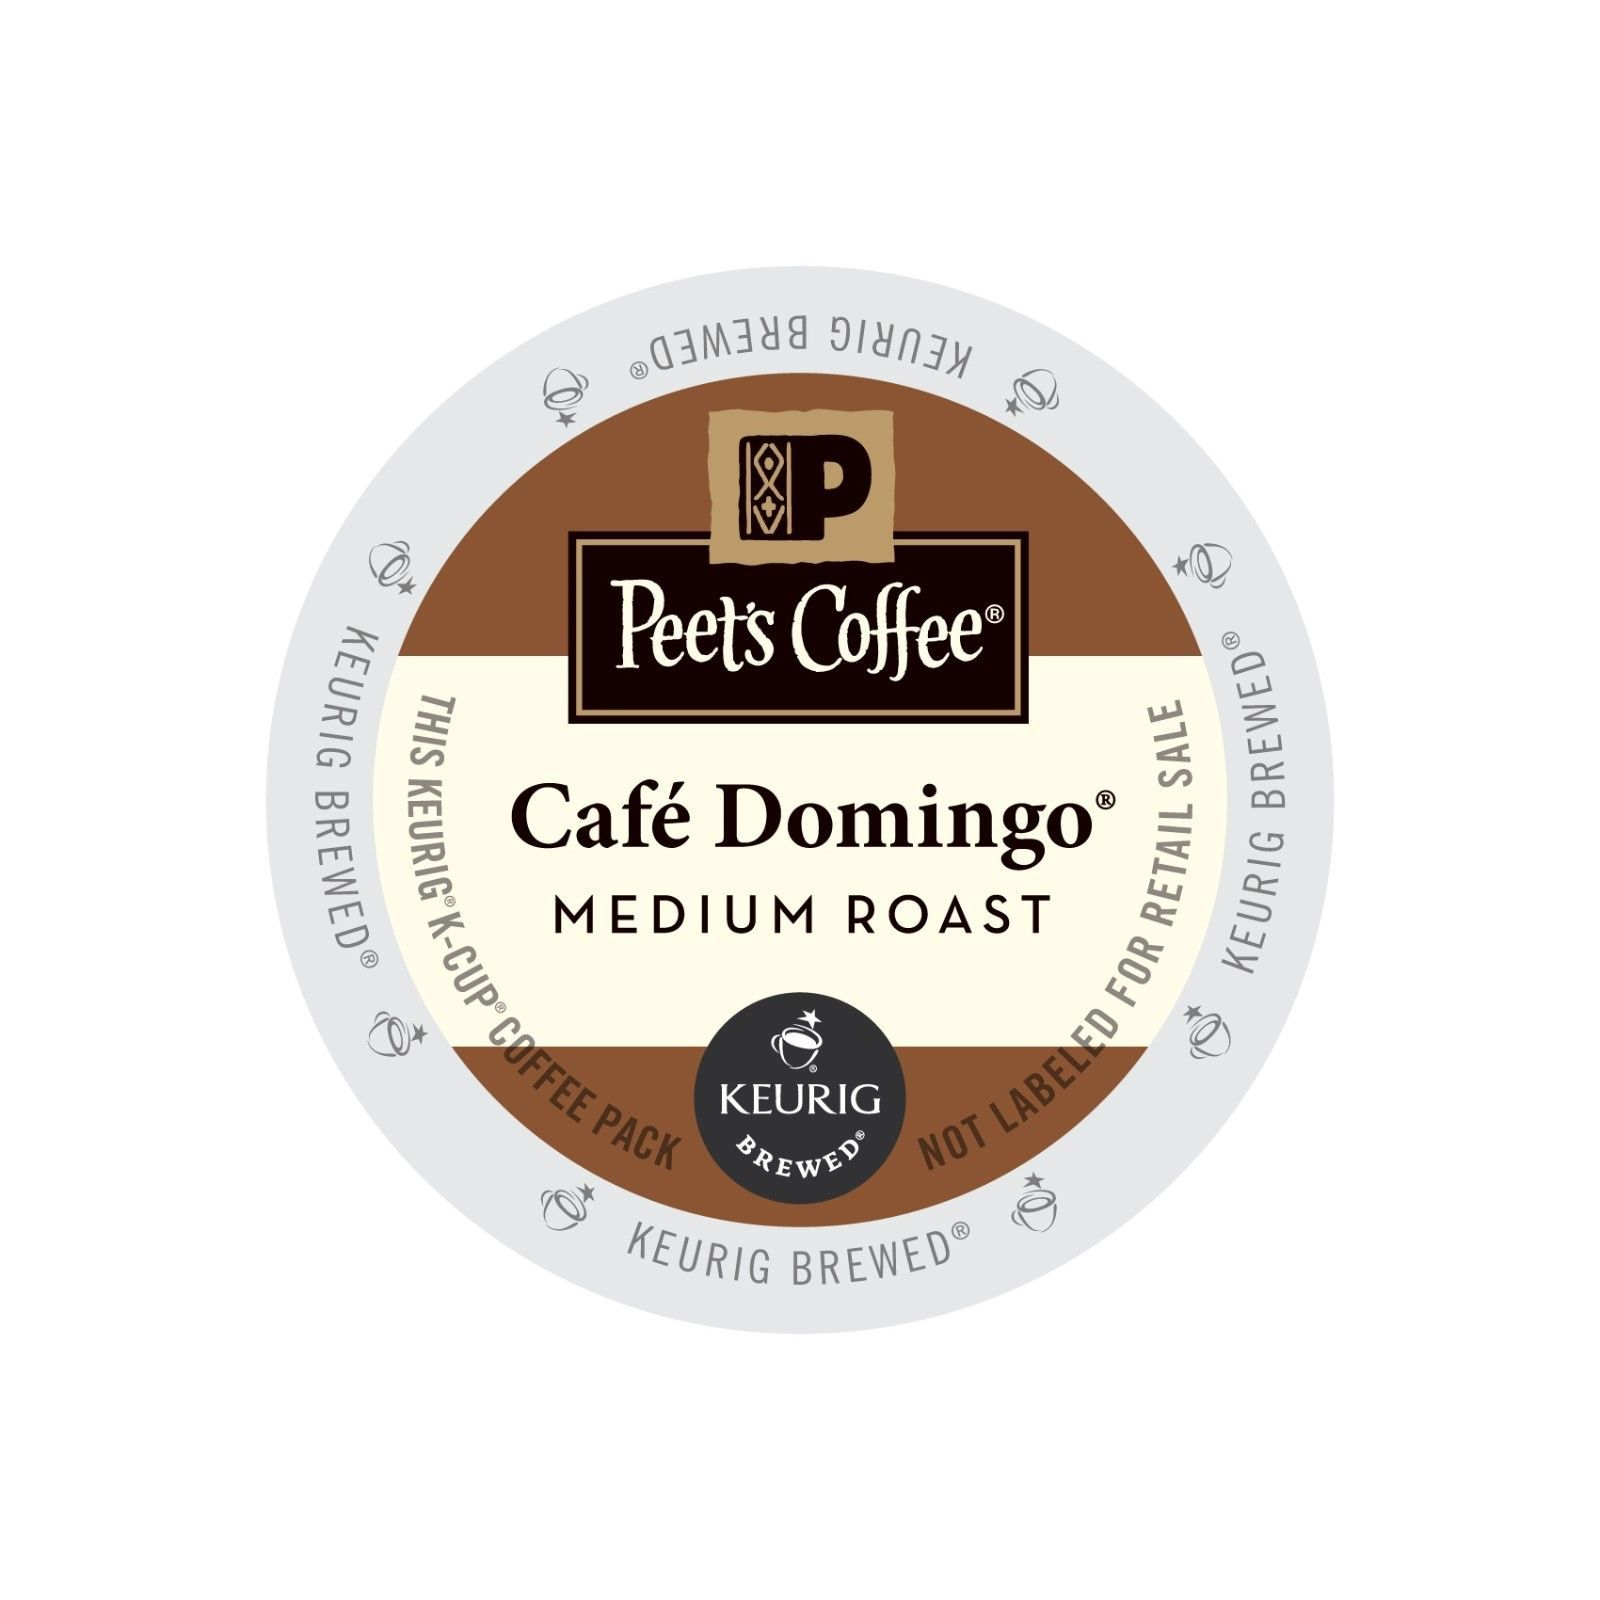 Peet's Coffee Cafe Domingo Coffee, 22 Kcups, FREE SHIPPING